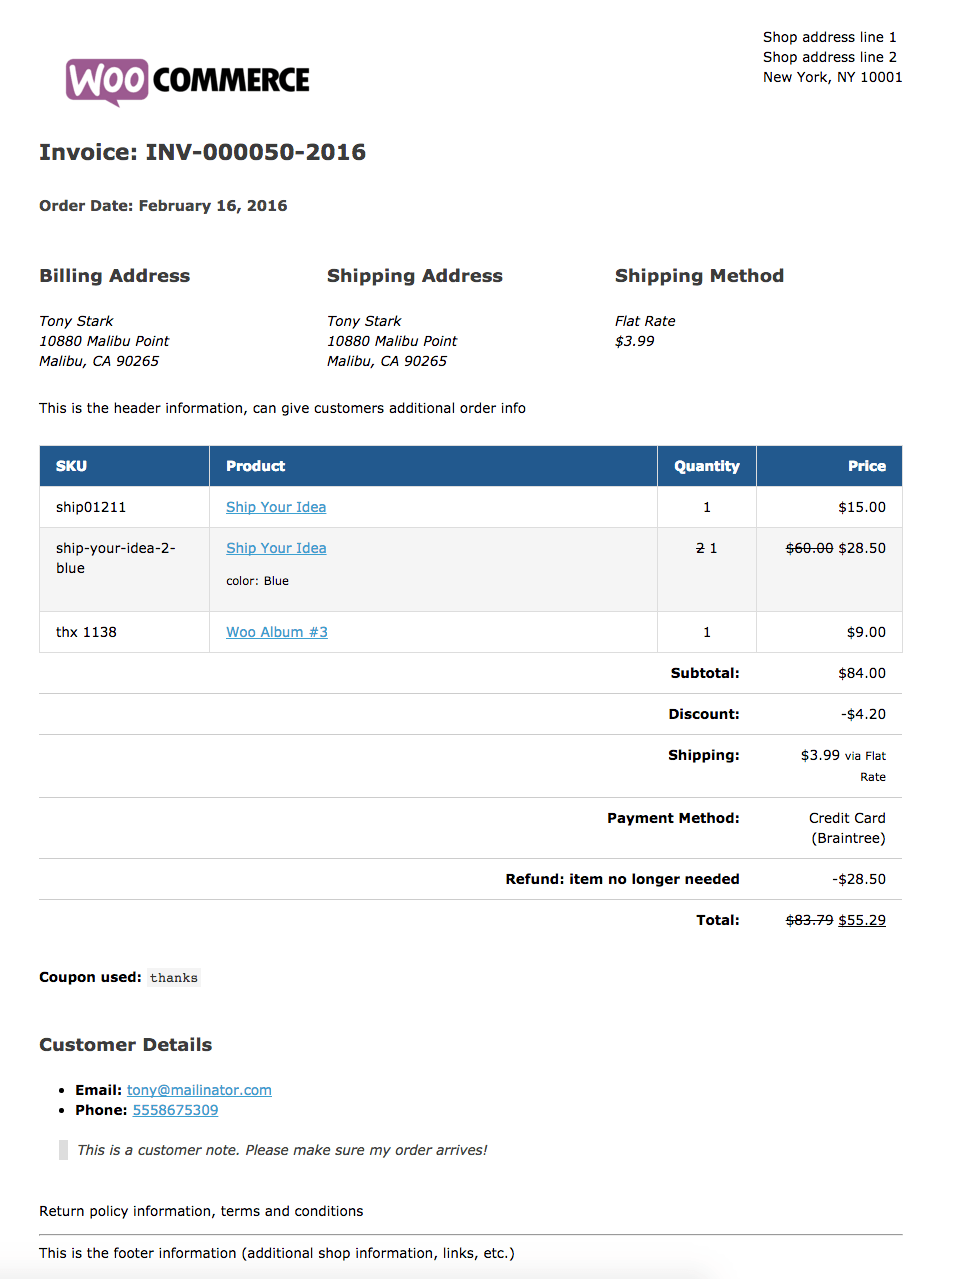 Breakupus  Outstanding Woocommerce Print Invoices Amp Packing Lists  Woocommerce Docs With Lovely Sample Invoice With Comely Gmc Acadia Invoice Price Also Painting Invoice Template In Addition Planet Soho Invoices And Ronin Invoice As Well As Massage Therapy Invoice Additionally Google Doc Invoice From Docswoocommercecom With Breakupus  Lovely Woocommerce Print Invoices Amp Packing Lists  Woocommerce Docs With Comely Sample Invoice And Outstanding Gmc Acadia Invoice Price Also Painting Invoice Template In Addition Planet Soho Invoices From Docswoocommercecom